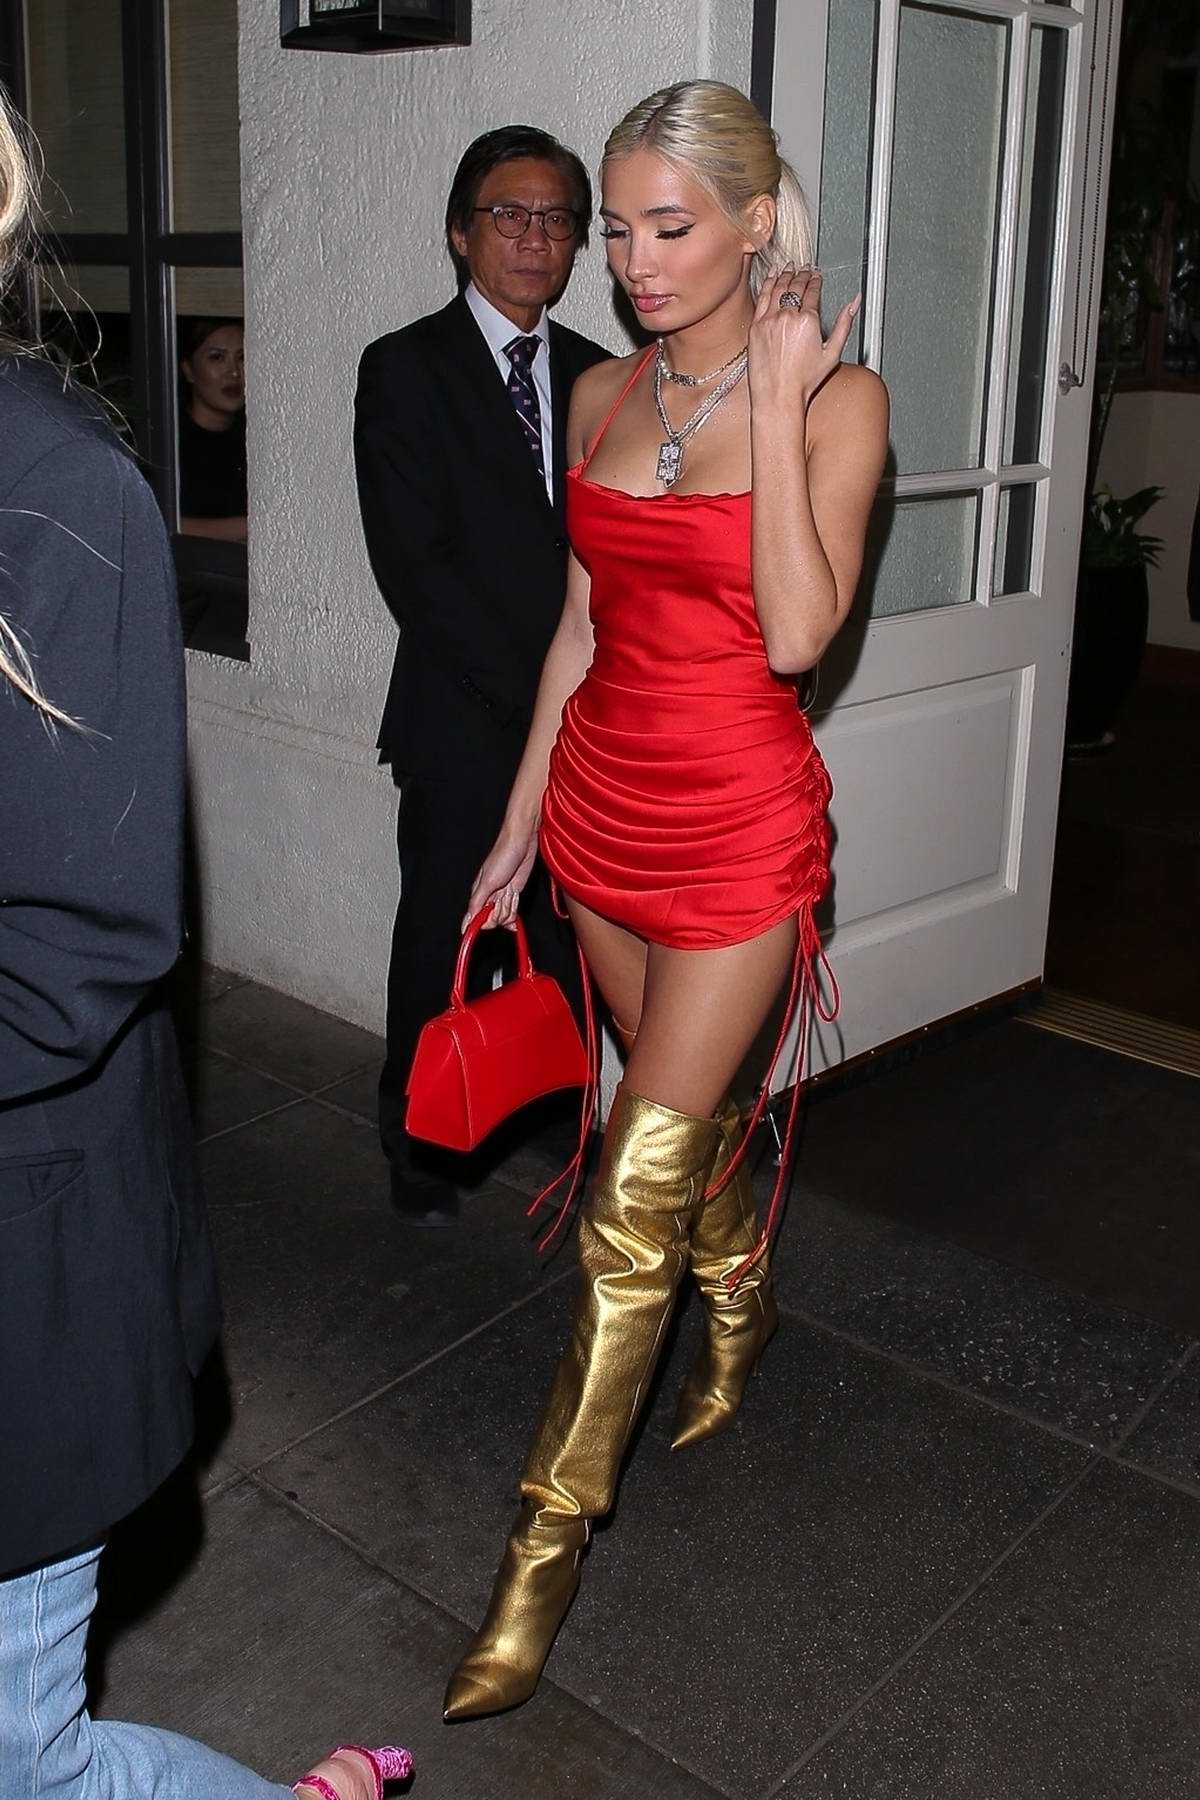 Pia Mia wears red mini dress and gold thigh-high boots as she leaves Madeo Italian restaurant in Beverly Hills, California